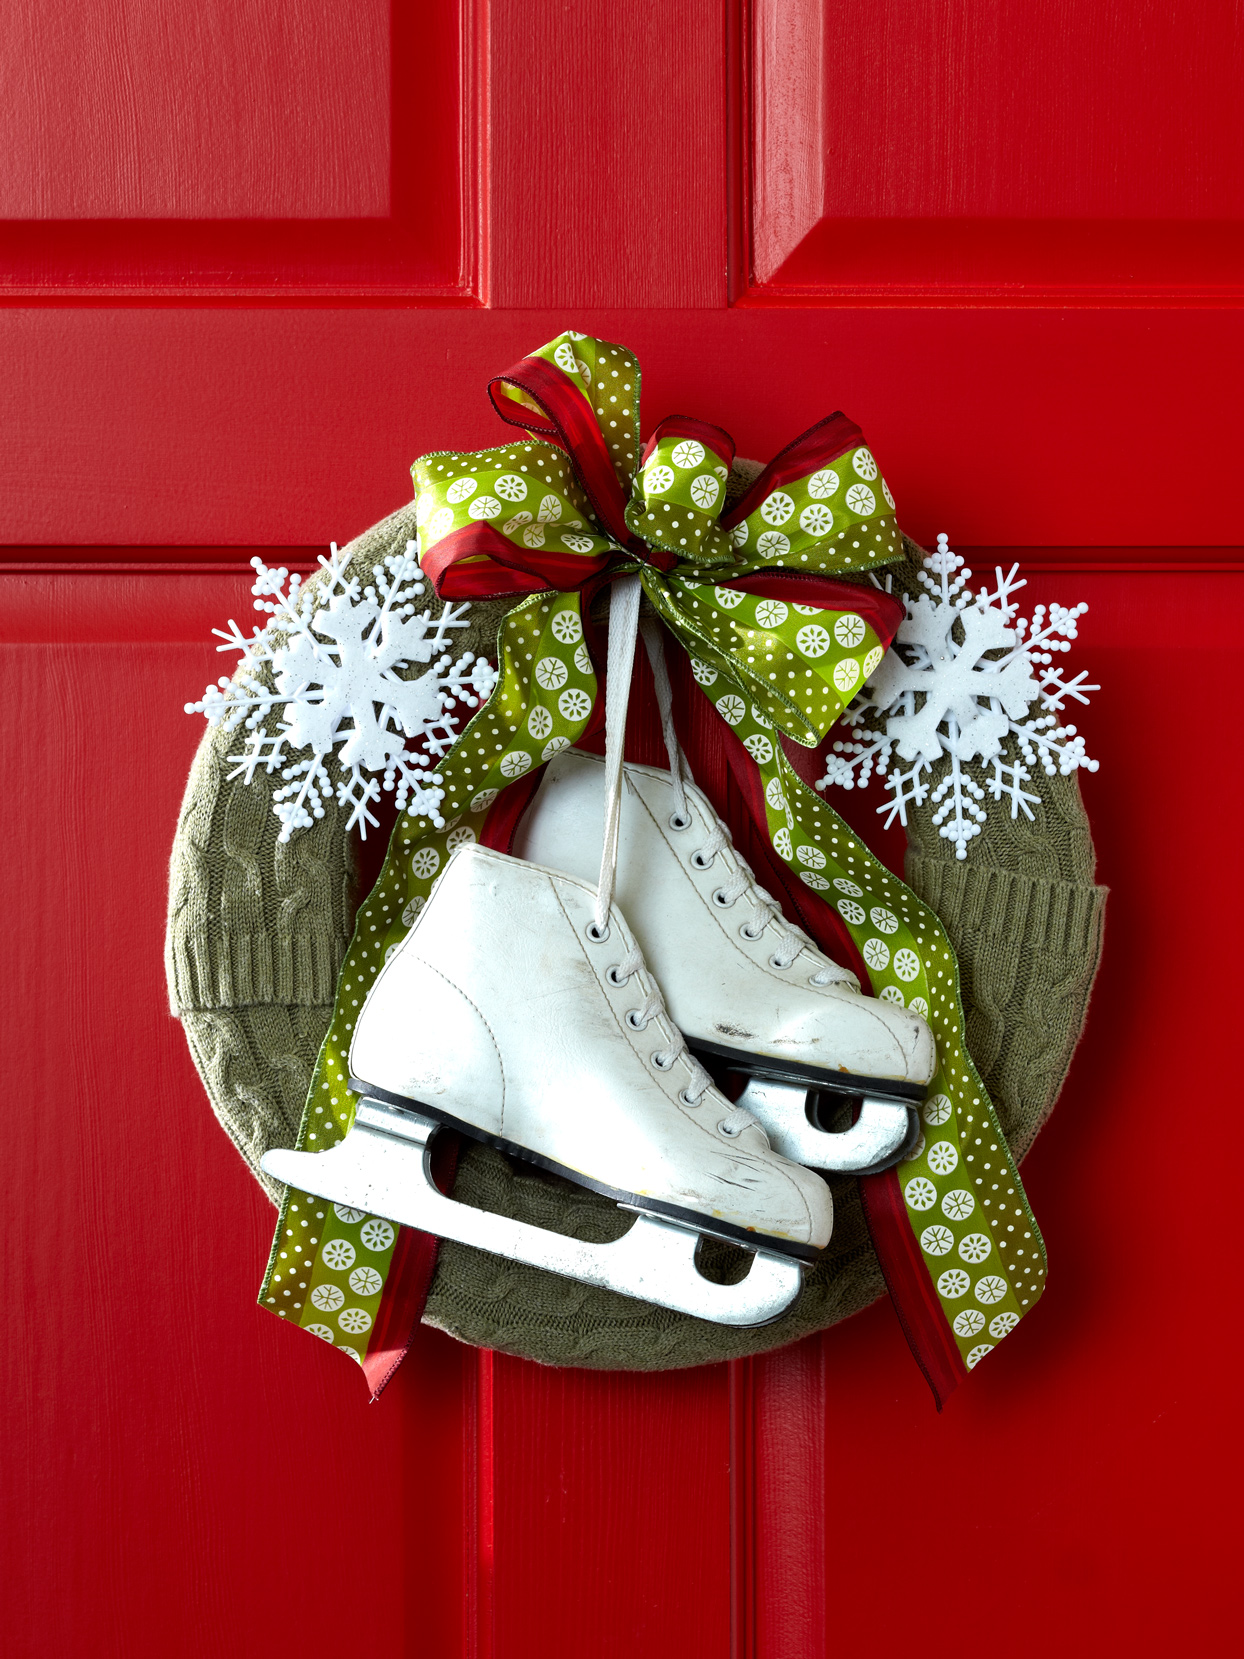 holiday wreath with ice skates hanging from a red door